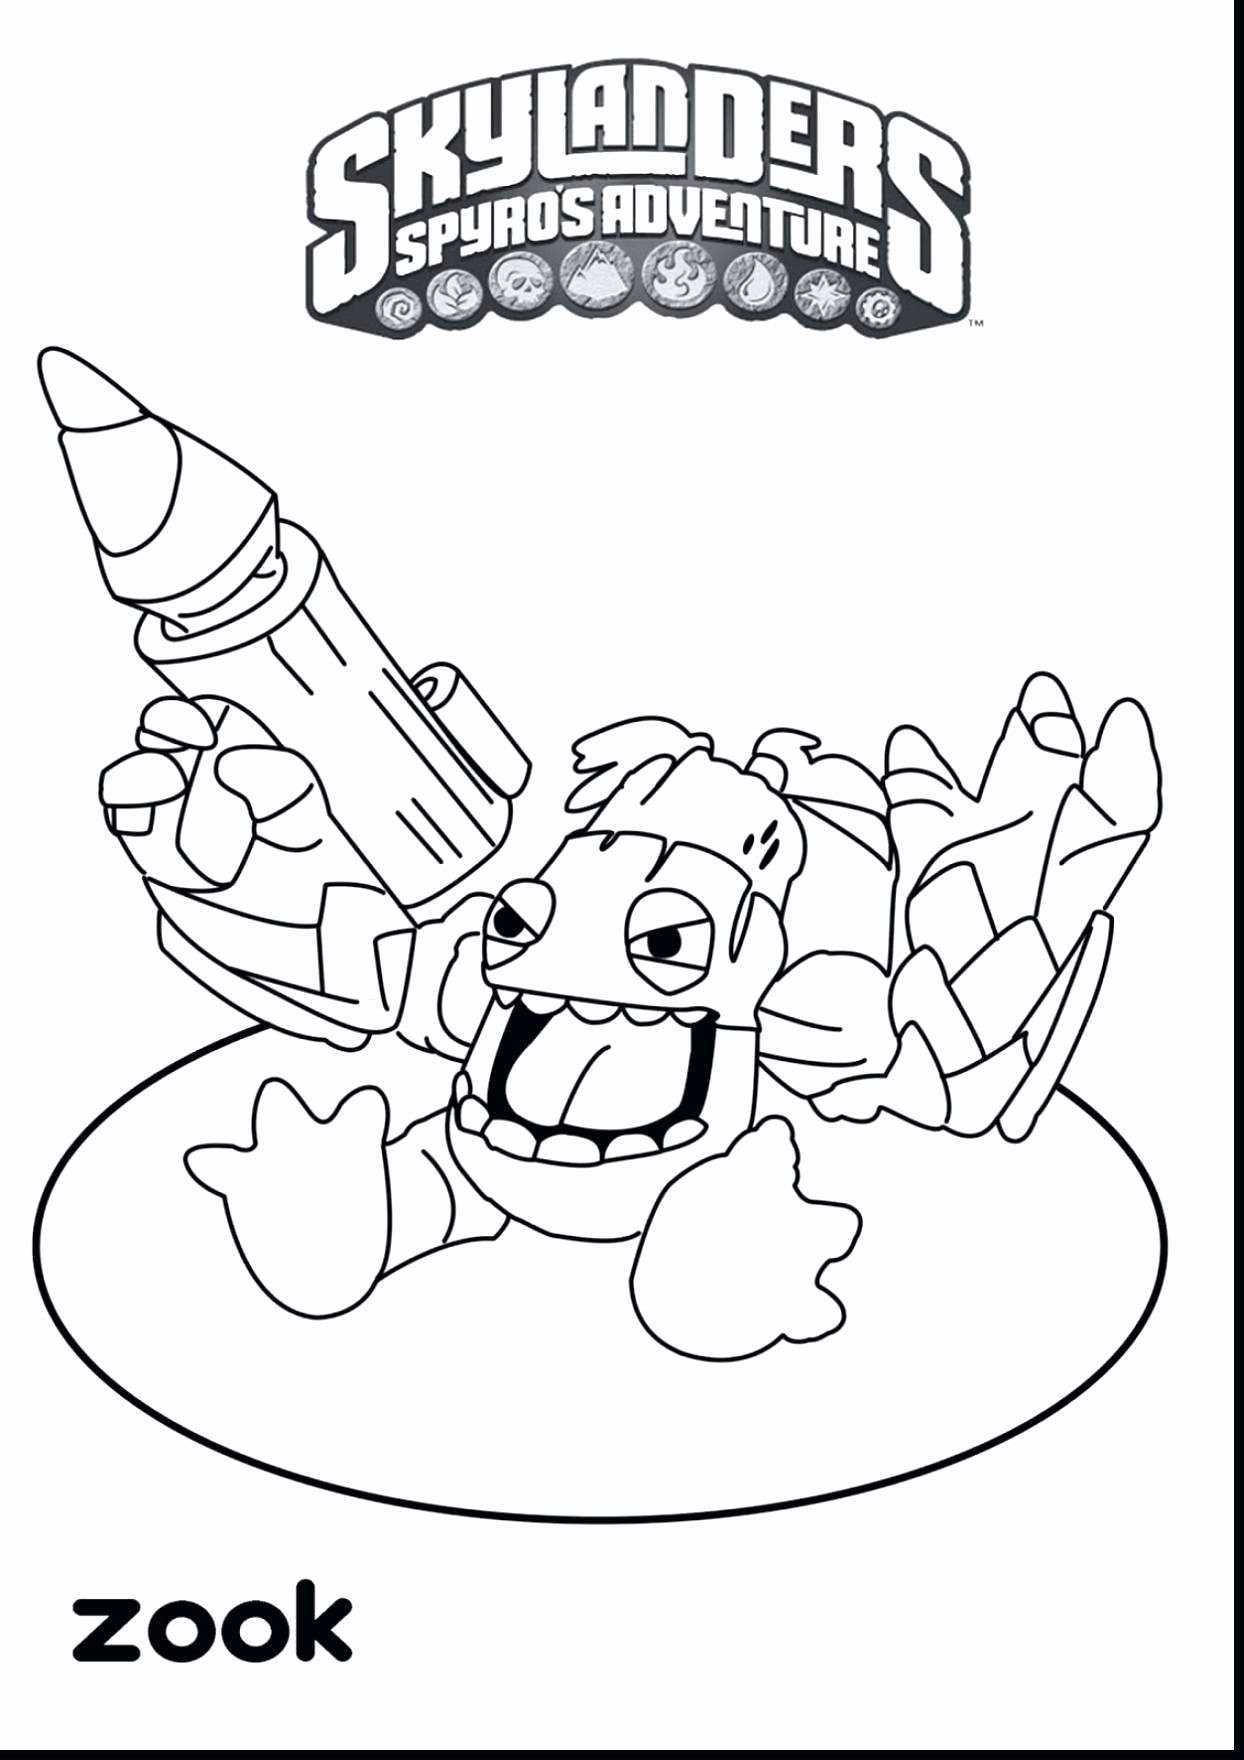 Free Printable Sports Coloring Pages  Gallery 17m - Free For Children